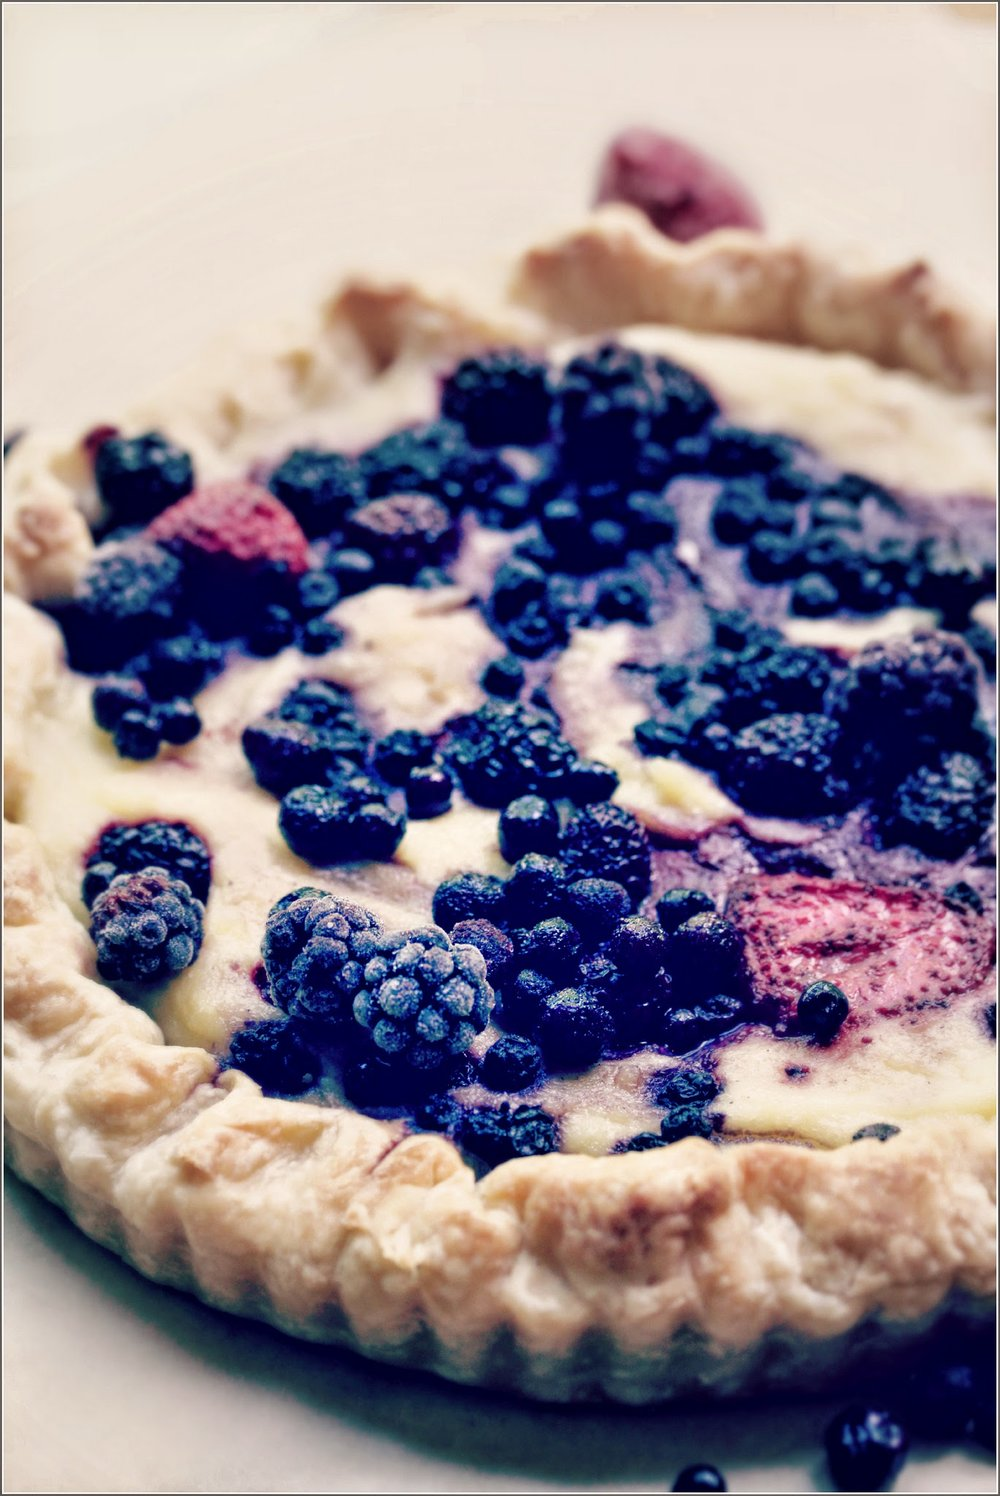 Mixed Berry Tart - 2 9-inch tarts, about 16 ServingsIngredients:For the pastry shell:2 ½ cups all-purpose flour1 tablespoon granulated sugar¾ teaspoon salt½ cup salted butter, chilled and cut into small pieces½ cup vegetable shortening, chilled and cut into small pieces6 tablespoons buttermilk, chilledFor the filling:⅓ cup heavy cream1 ½ cup whole milk5 tablespoons granulated sugar1 teaspoon pure vanilla extract⅓ cup semolina1 large egg1 ⅔ cups assorted fresh berries, stems removed, rinsed and sliced as neededFor serving:Confectioners' sugar, for dusting2-3 cups assorted fresh berries, stems removed, rinsed and sliced as neededHandful rinsed fresh mint leaves, optionalInstructions:To prepare the tart dough and pre-bake the pastry shell:In a large bowl, combine the flour, sugar, and salt. Add the butter and vegetable shortening. Cut them in using your hands or a pastry blender. Blend it till the mixture resembles a coarse meal the size of peas.Add the buttermilk and mix it until the mixture is just moistened. You don't want it wet.Press the dough together and divide it in half. Wrap each piece in clear film and chill it for at least one hour, up to 24 hours.Prepare 2 9-inch tart pans with removable bottoms by lining the outside with aluminum foil. (This will prevent spillage if  while the tart is baking.Remove one piece of pastry dough from the refrigerator. Remove the plastic film. Lightly dust a clean work surface with flour and roll the dough out until it a circle large enough to cover one tart pan and most of the sides comfortably. Carefully line the pan with the pastry dough and trim the edges. Repeat this with the second piece of pastry dough. Refrigerate both for at least one hour, up t 24 hours.Preheat oven to 325 degrees F. Cut out two pieces of parchment paper or foil  large enough to cover the base and sides of the tart pans.  Place them inside the pastry shells and fill with dried beans or rice so the sides of the pastry are totally supported by the beans and won' collapse during baking. Blind bake the shell for 20 to 25 minutes, until it is very  light brown. Remove from the oven and take out the beans or rice. Allow to cool while you prepare the filling. Leave the oven on.To make the filling, put the butter, cream, milk and sugar in a clean saucepan. Place the pan on the stove and bring to a boil. Let it simmer while you whisk in the semolina in a slow stream. Continue whisking until the mix comes back to a boil and thickens up like porridge. Remove from the heat and whisk in the vanilla and the egg.Pour the semolina mixture into the pastry shells  and level them with a wet spatula. Divide the prepared berries evenly between each tart and push them gently into the semolina mixture. Place in oven and bake until the filling is slightly golden, 20 to 25 minutes.Remove the tarts from the oven and allow to cool completely before removing them from the pans.When ready to serve, dust the tarts with confectioners' sugar. Slice into wedges and serve garnished with more fresh berries. Add a few fresh mint leaves, if you like.Enjoy.Notes:This recipe was adapted from Tate's Bake Shop Cookbook by Kathleen King (for the pastry dough) and Ottolenghi: The Cookbook by Yotam Ottolenghi and Sami Tamimi for the semolina and berry filling.